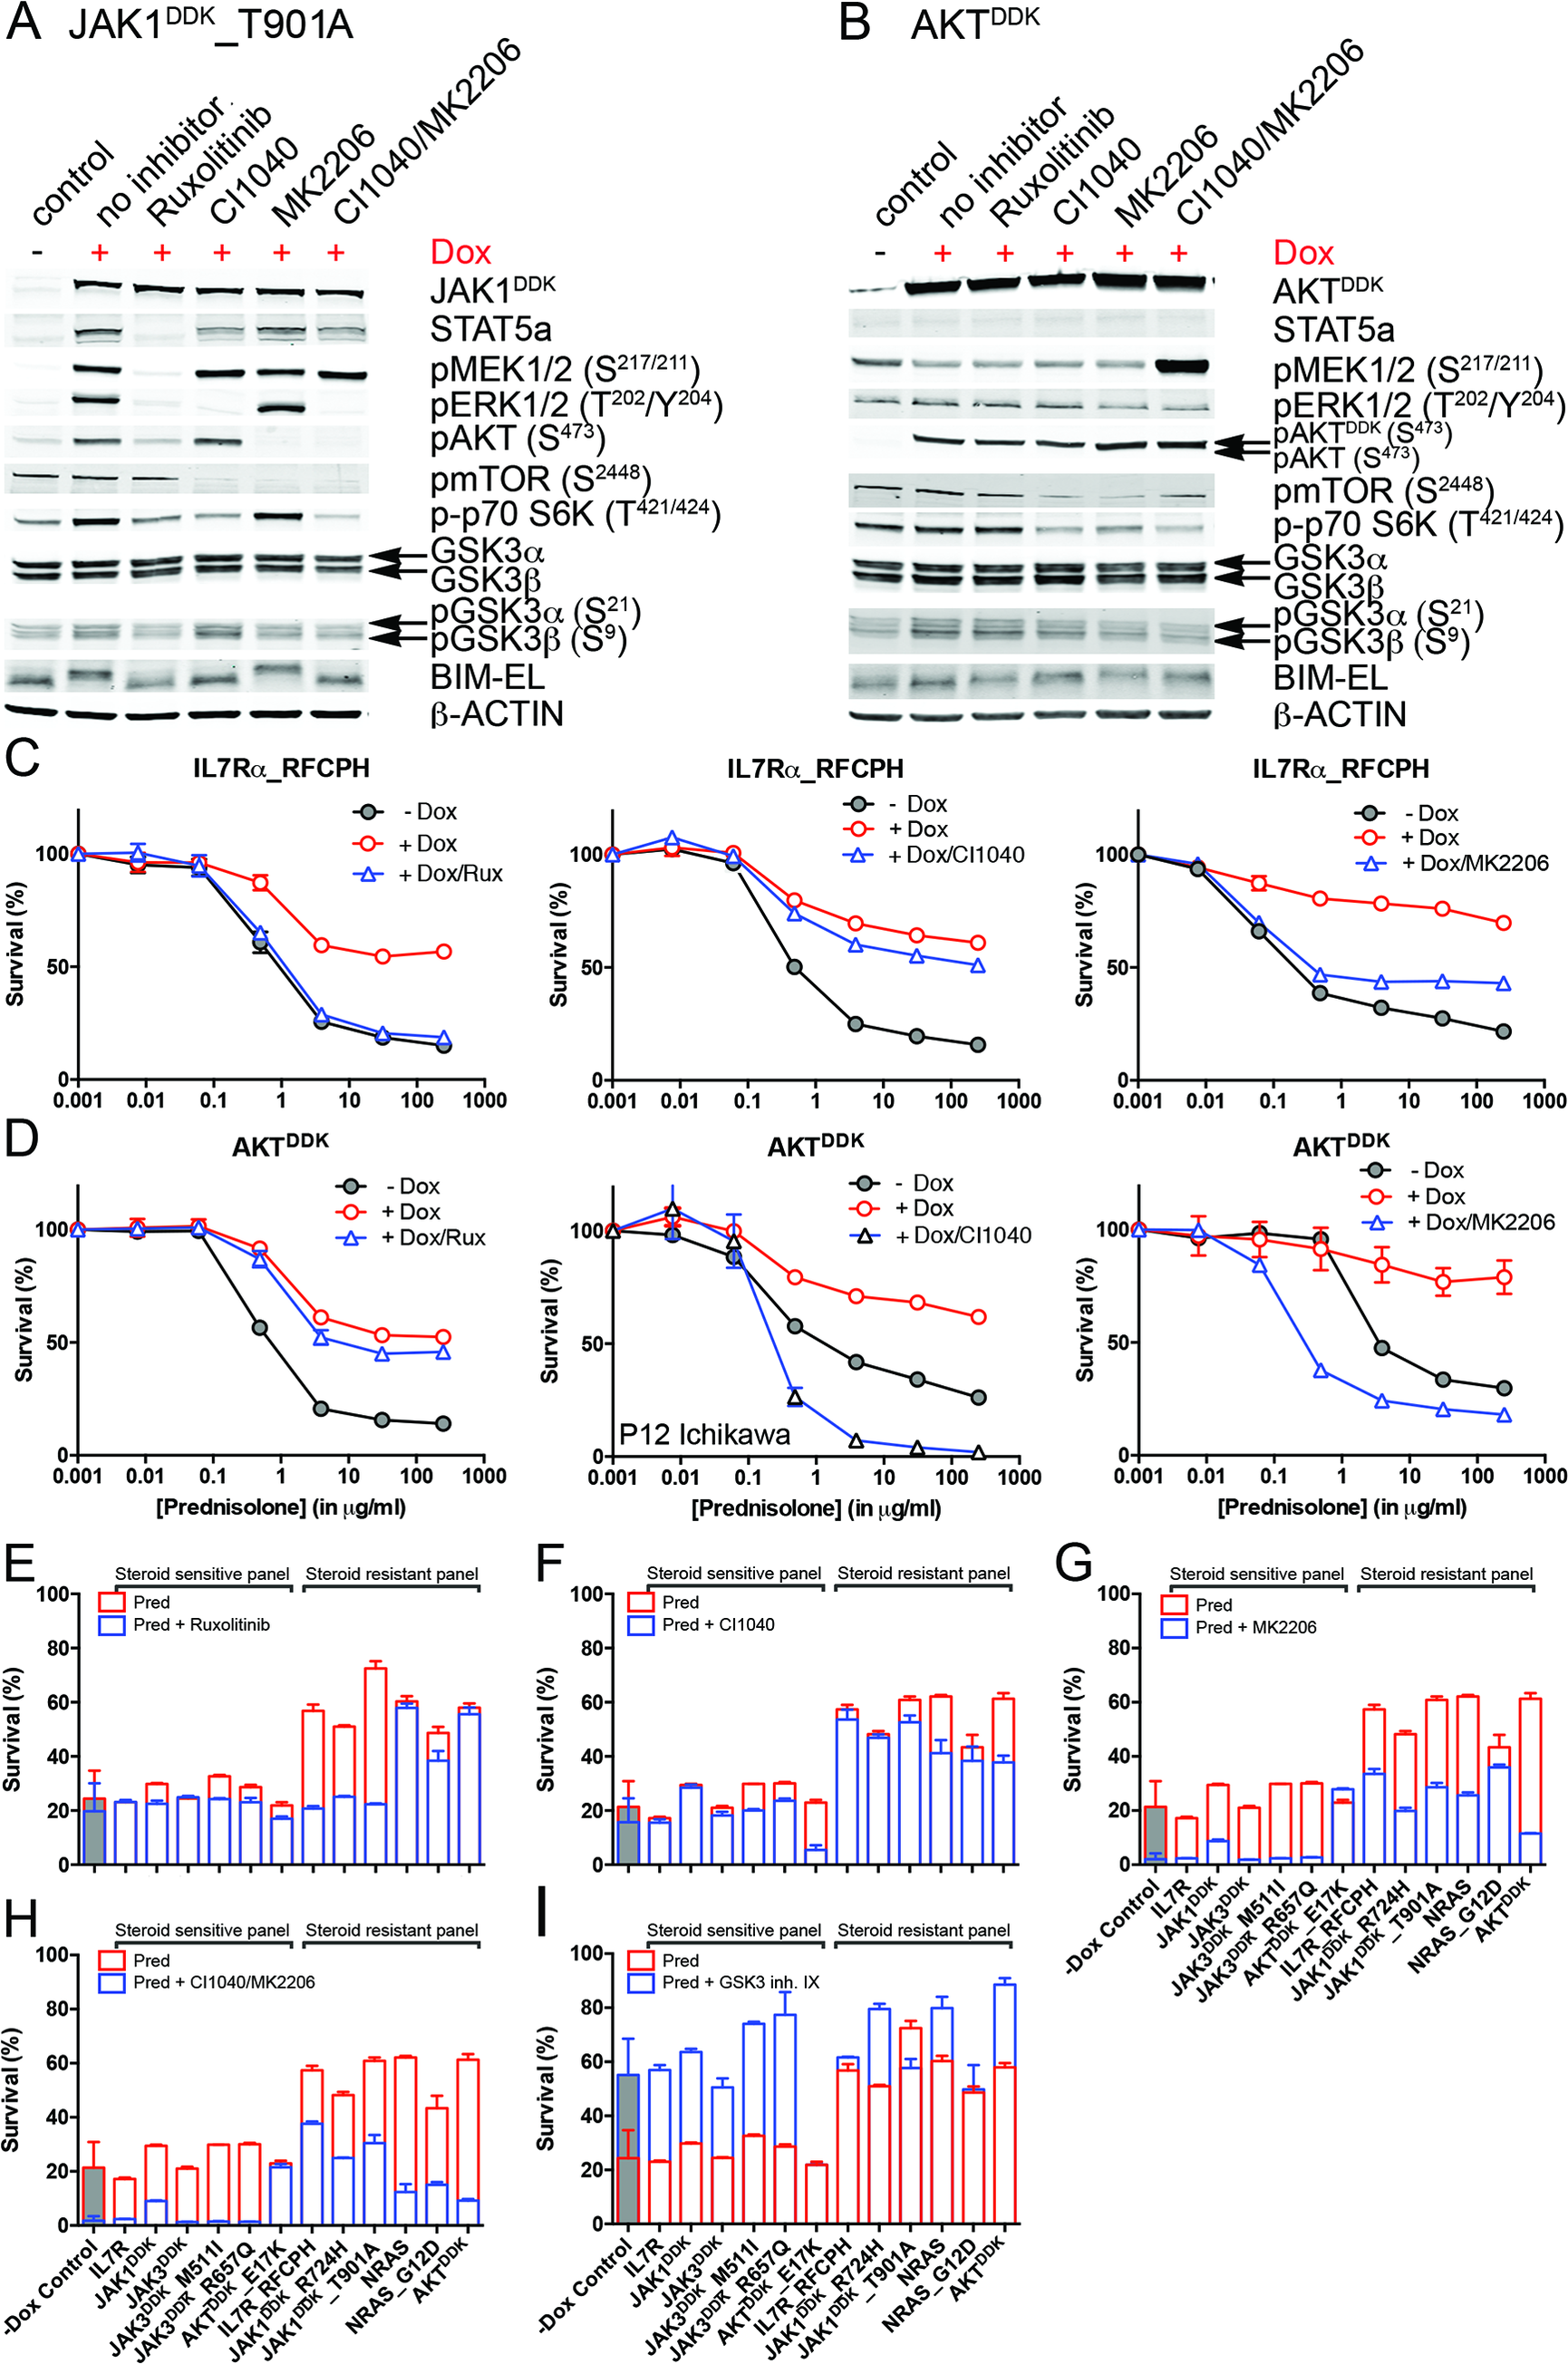 Reversal of steroid resistance by IL7R signaling inhibitors.